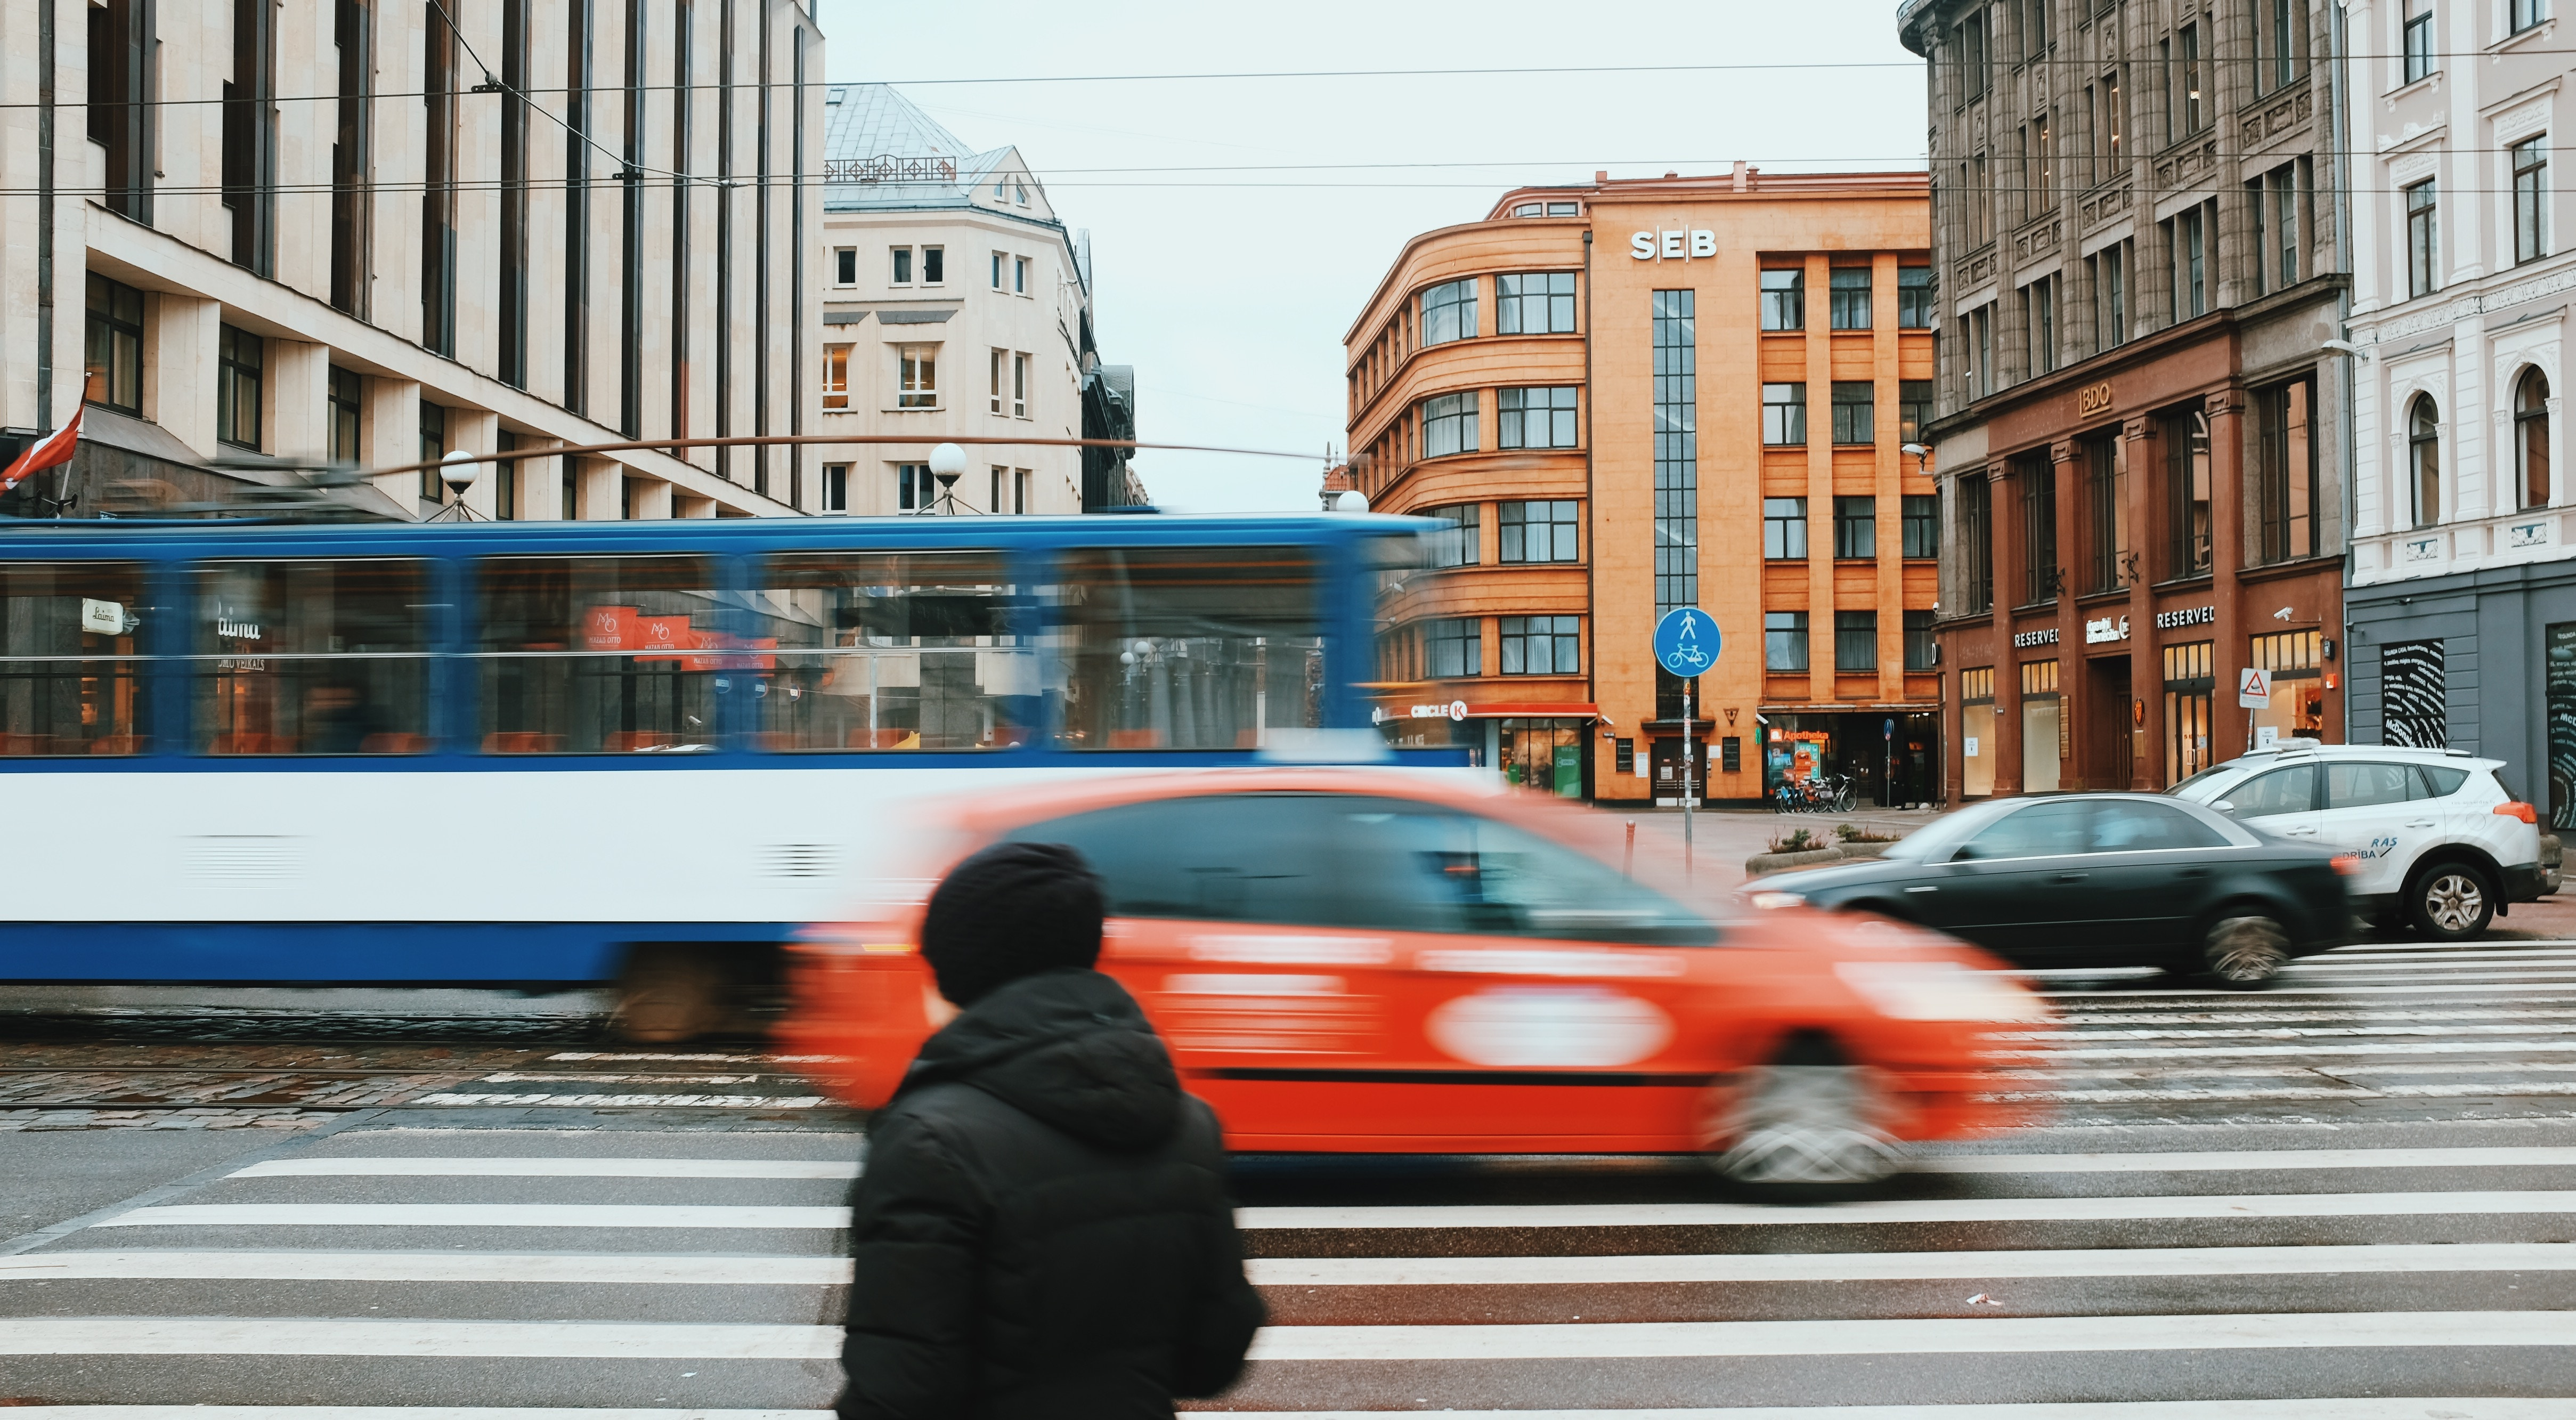 Electric vehicles for Riga's municipal services and awareness-raising